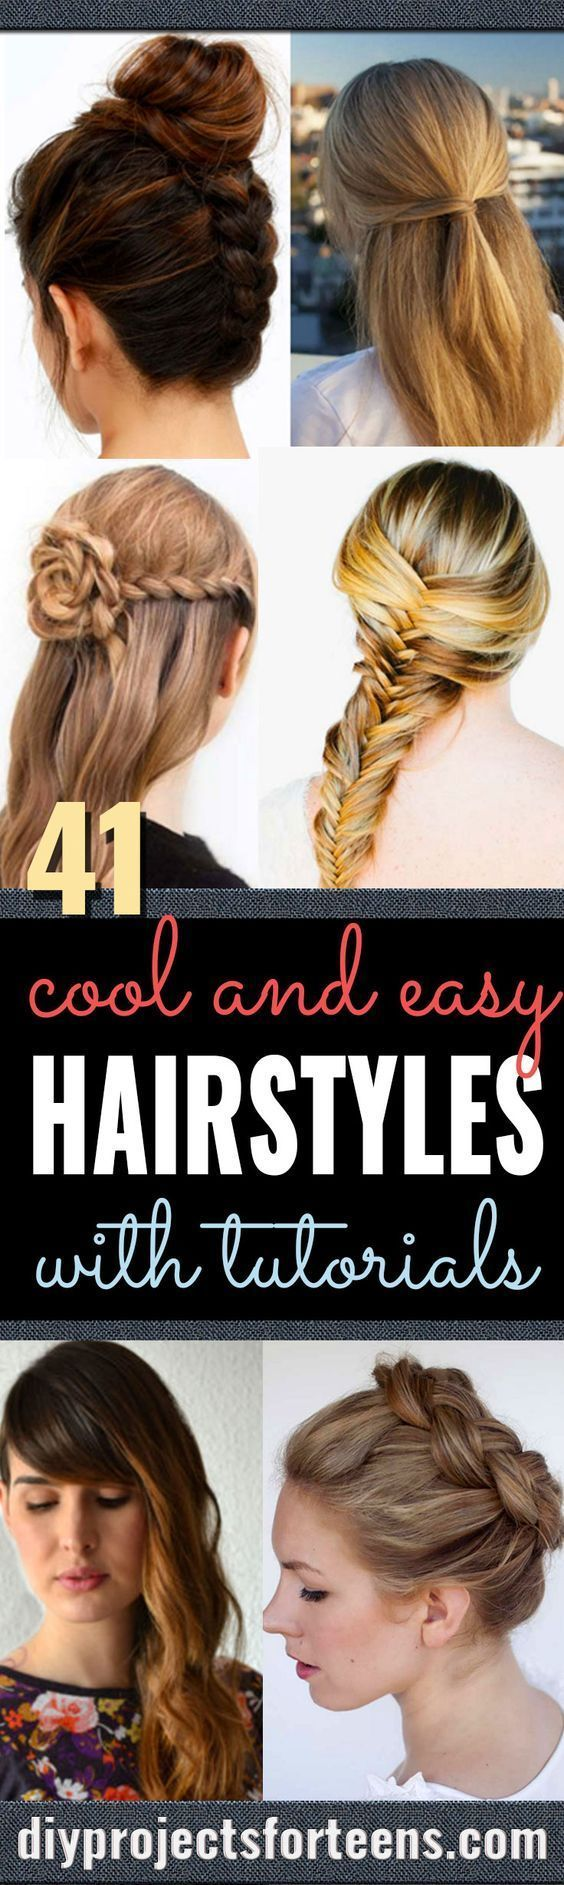 simple hair styles best 25 easy hairstyles ideas on 1537